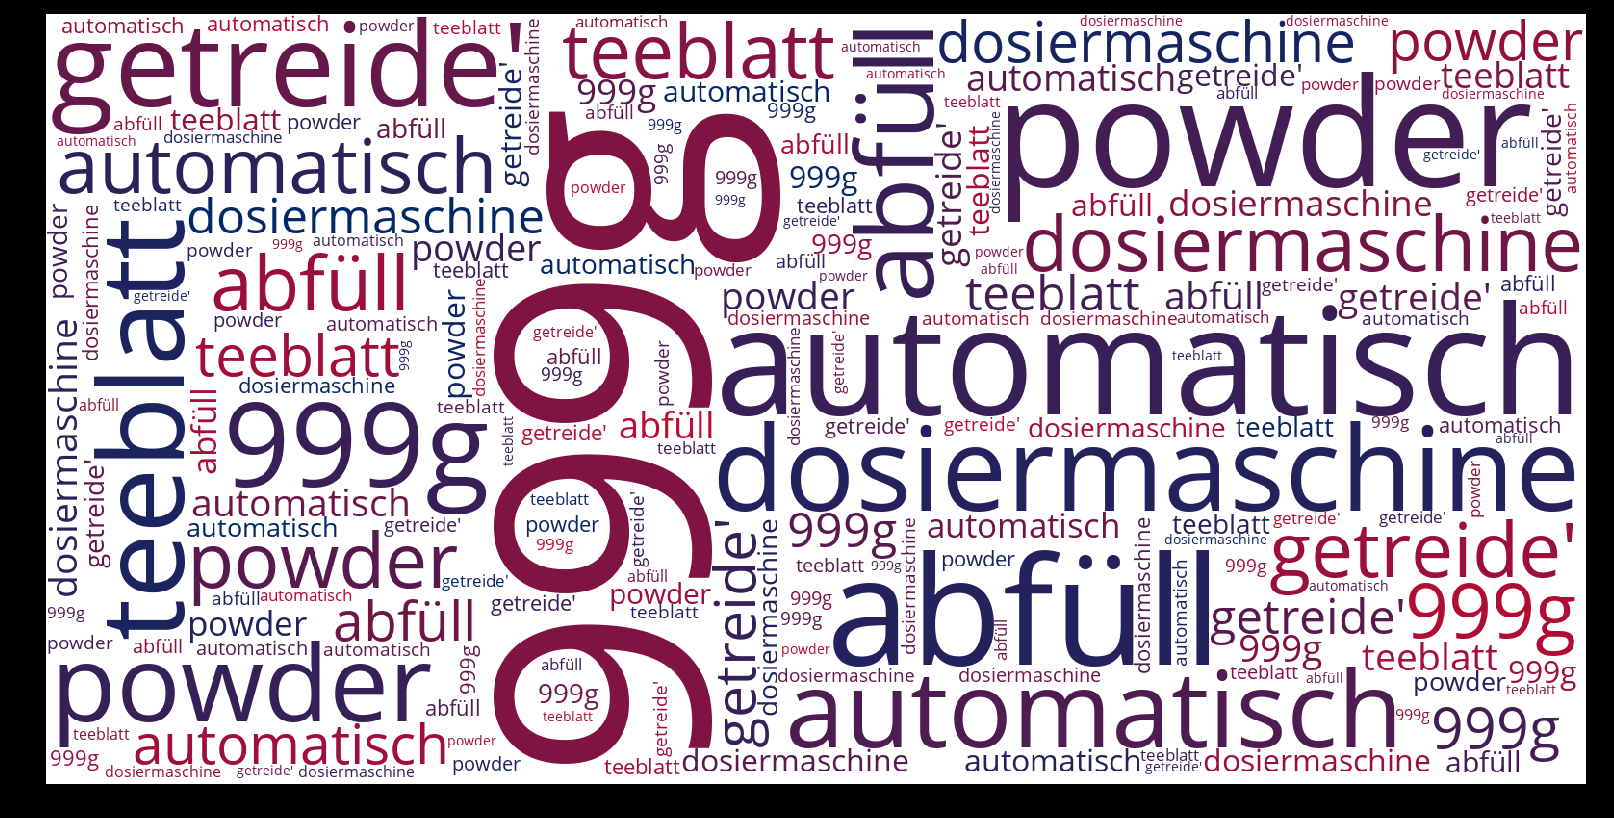 Dosiermaschine-wordcloud